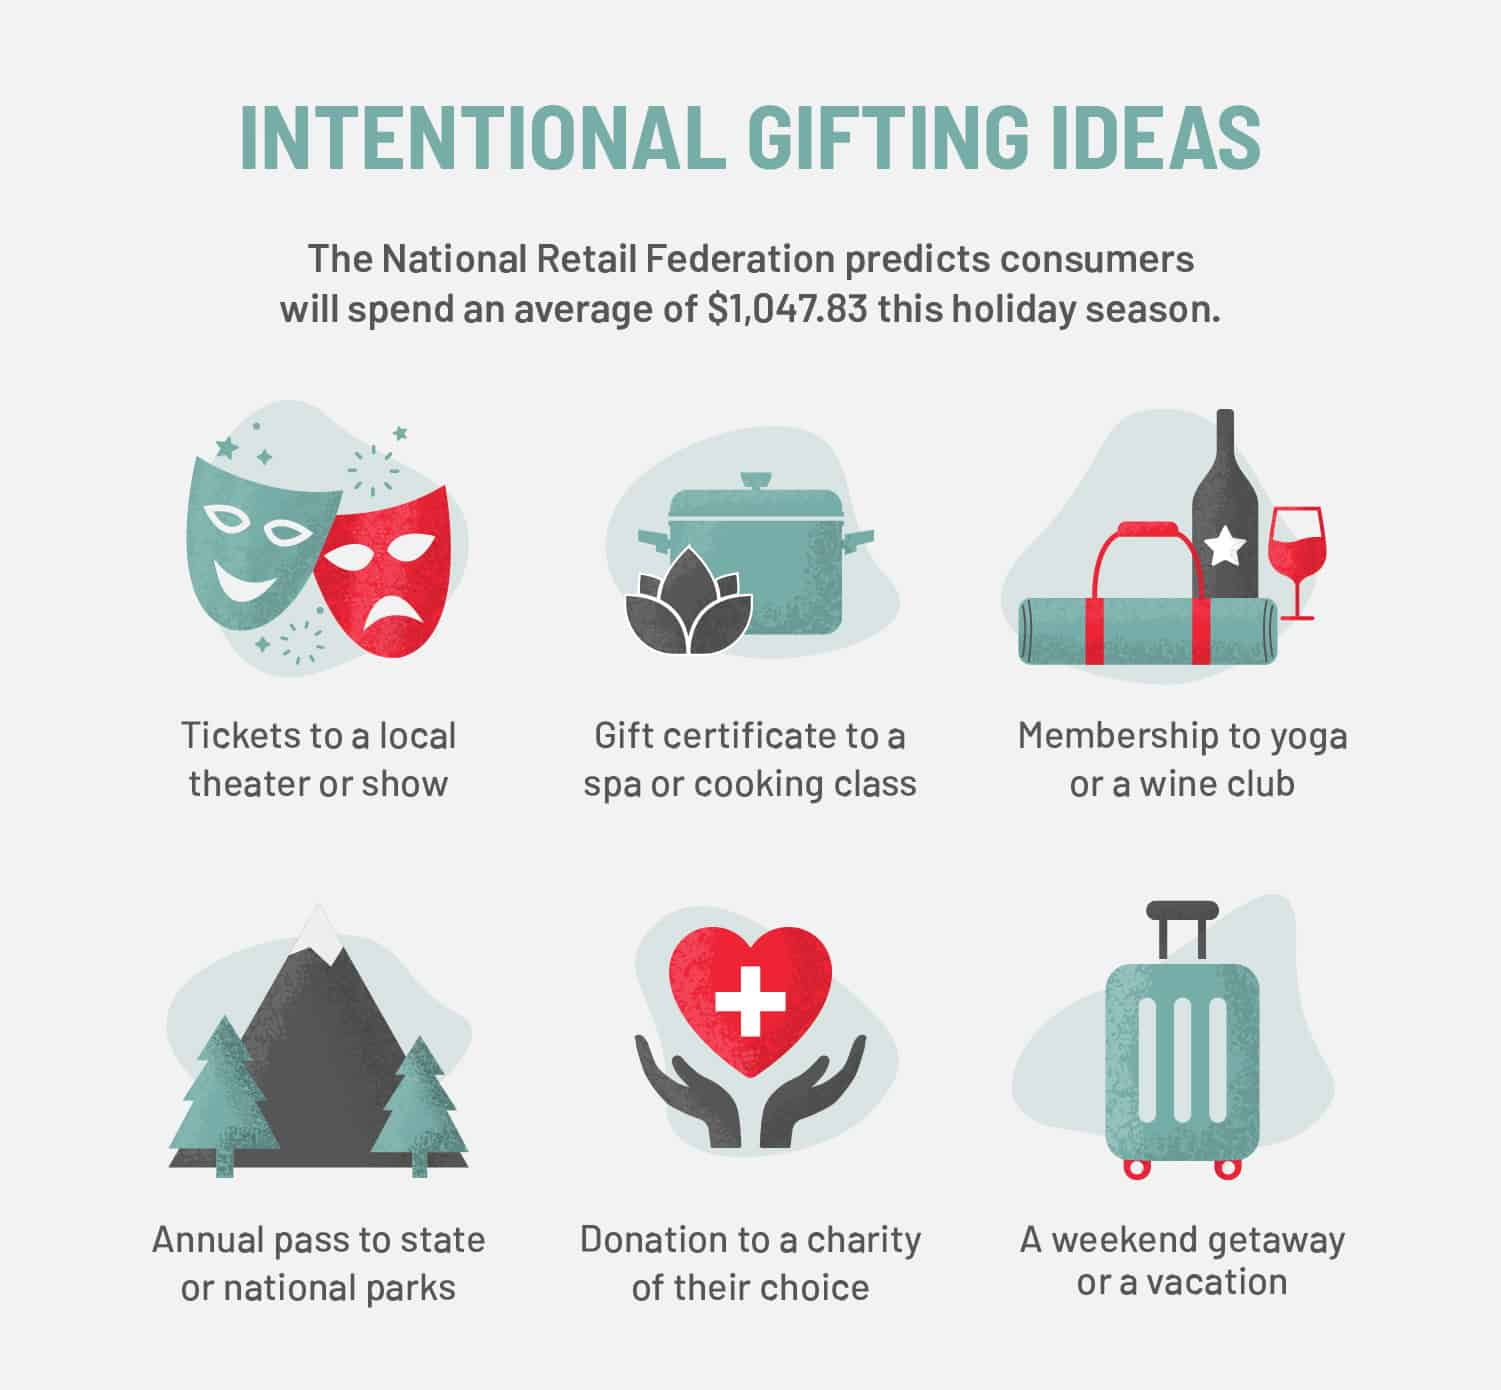 graphic that shows intentional gifting